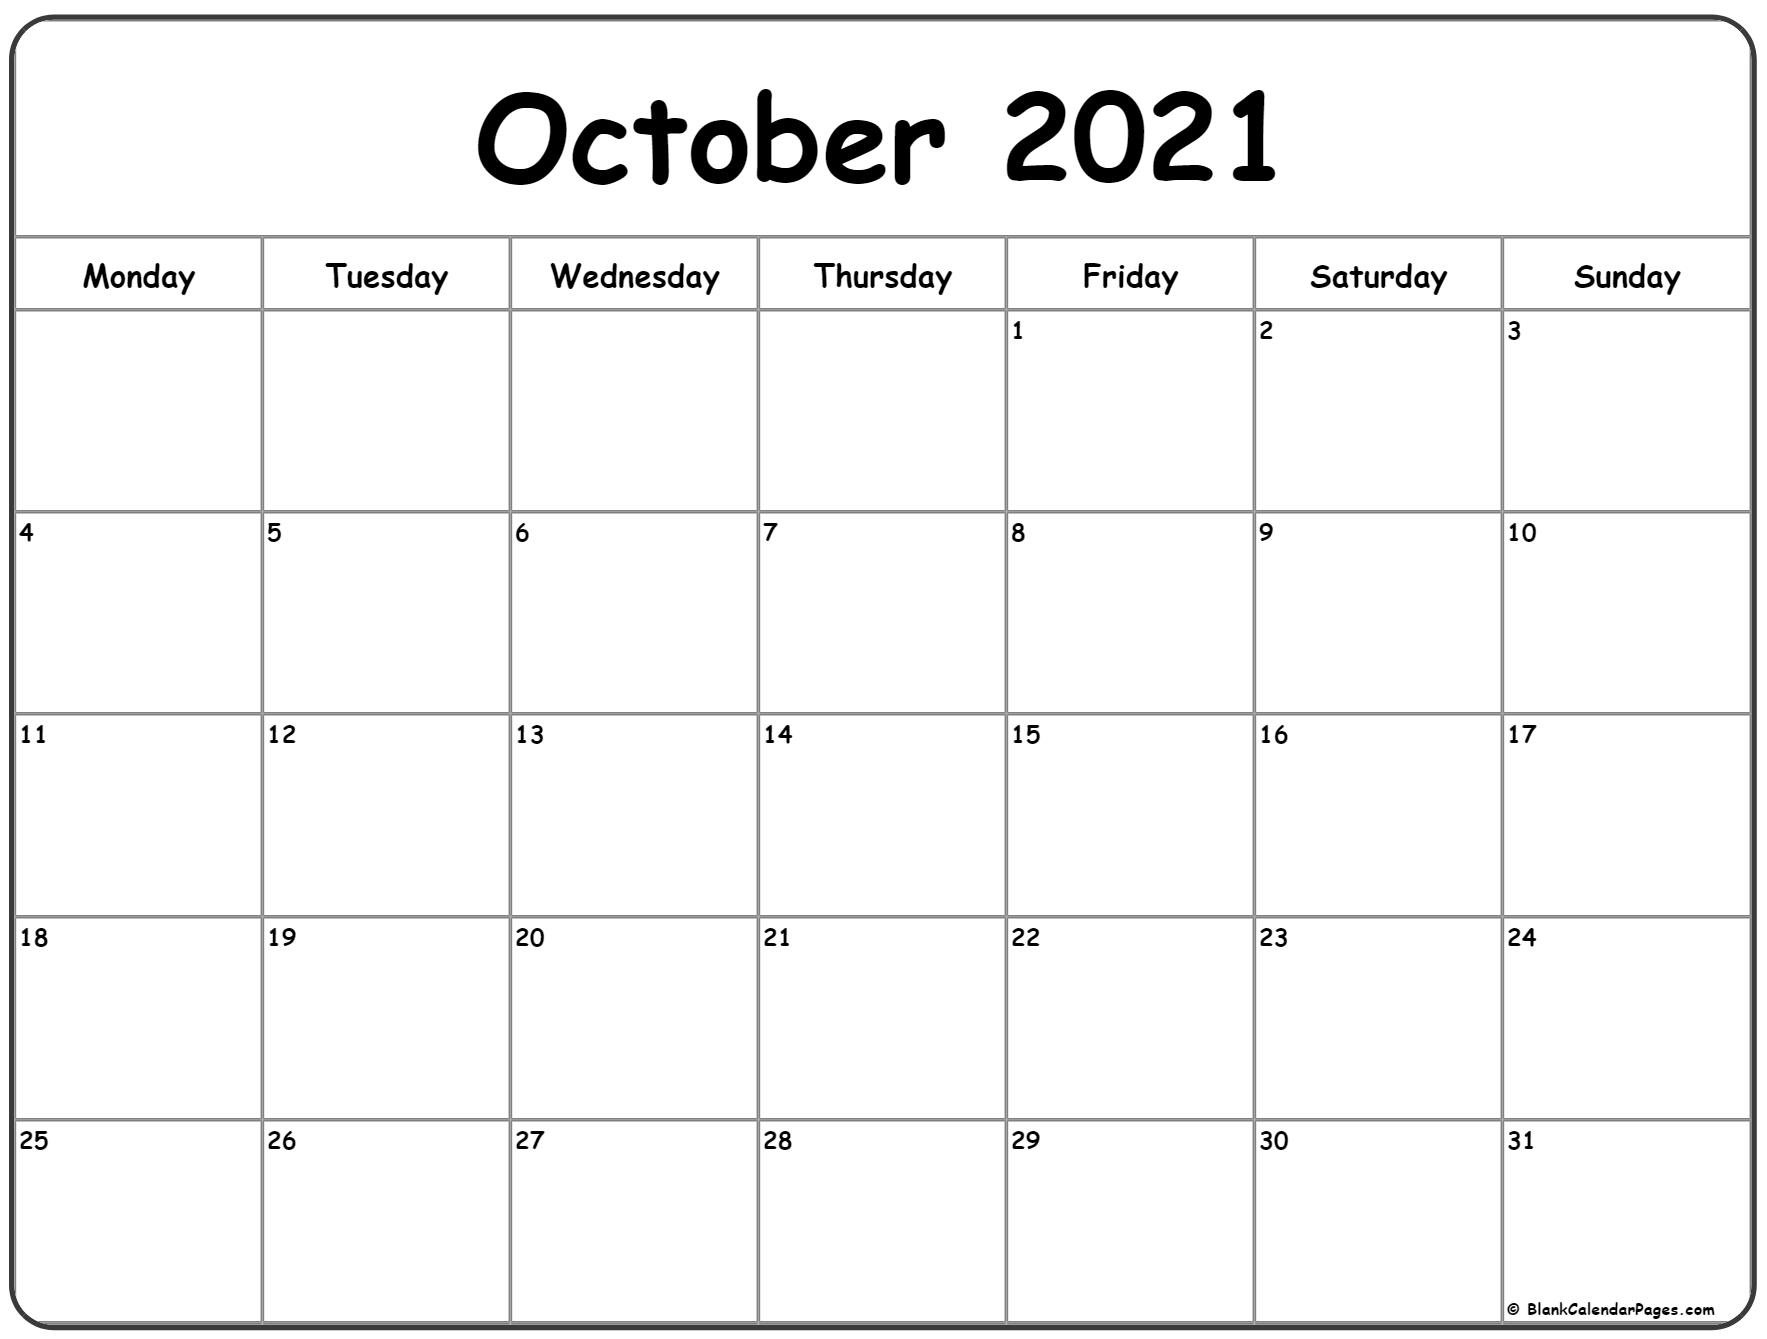 Blank October Calendar 2021 October 2021 Monday Calendar | Monday to Sunday